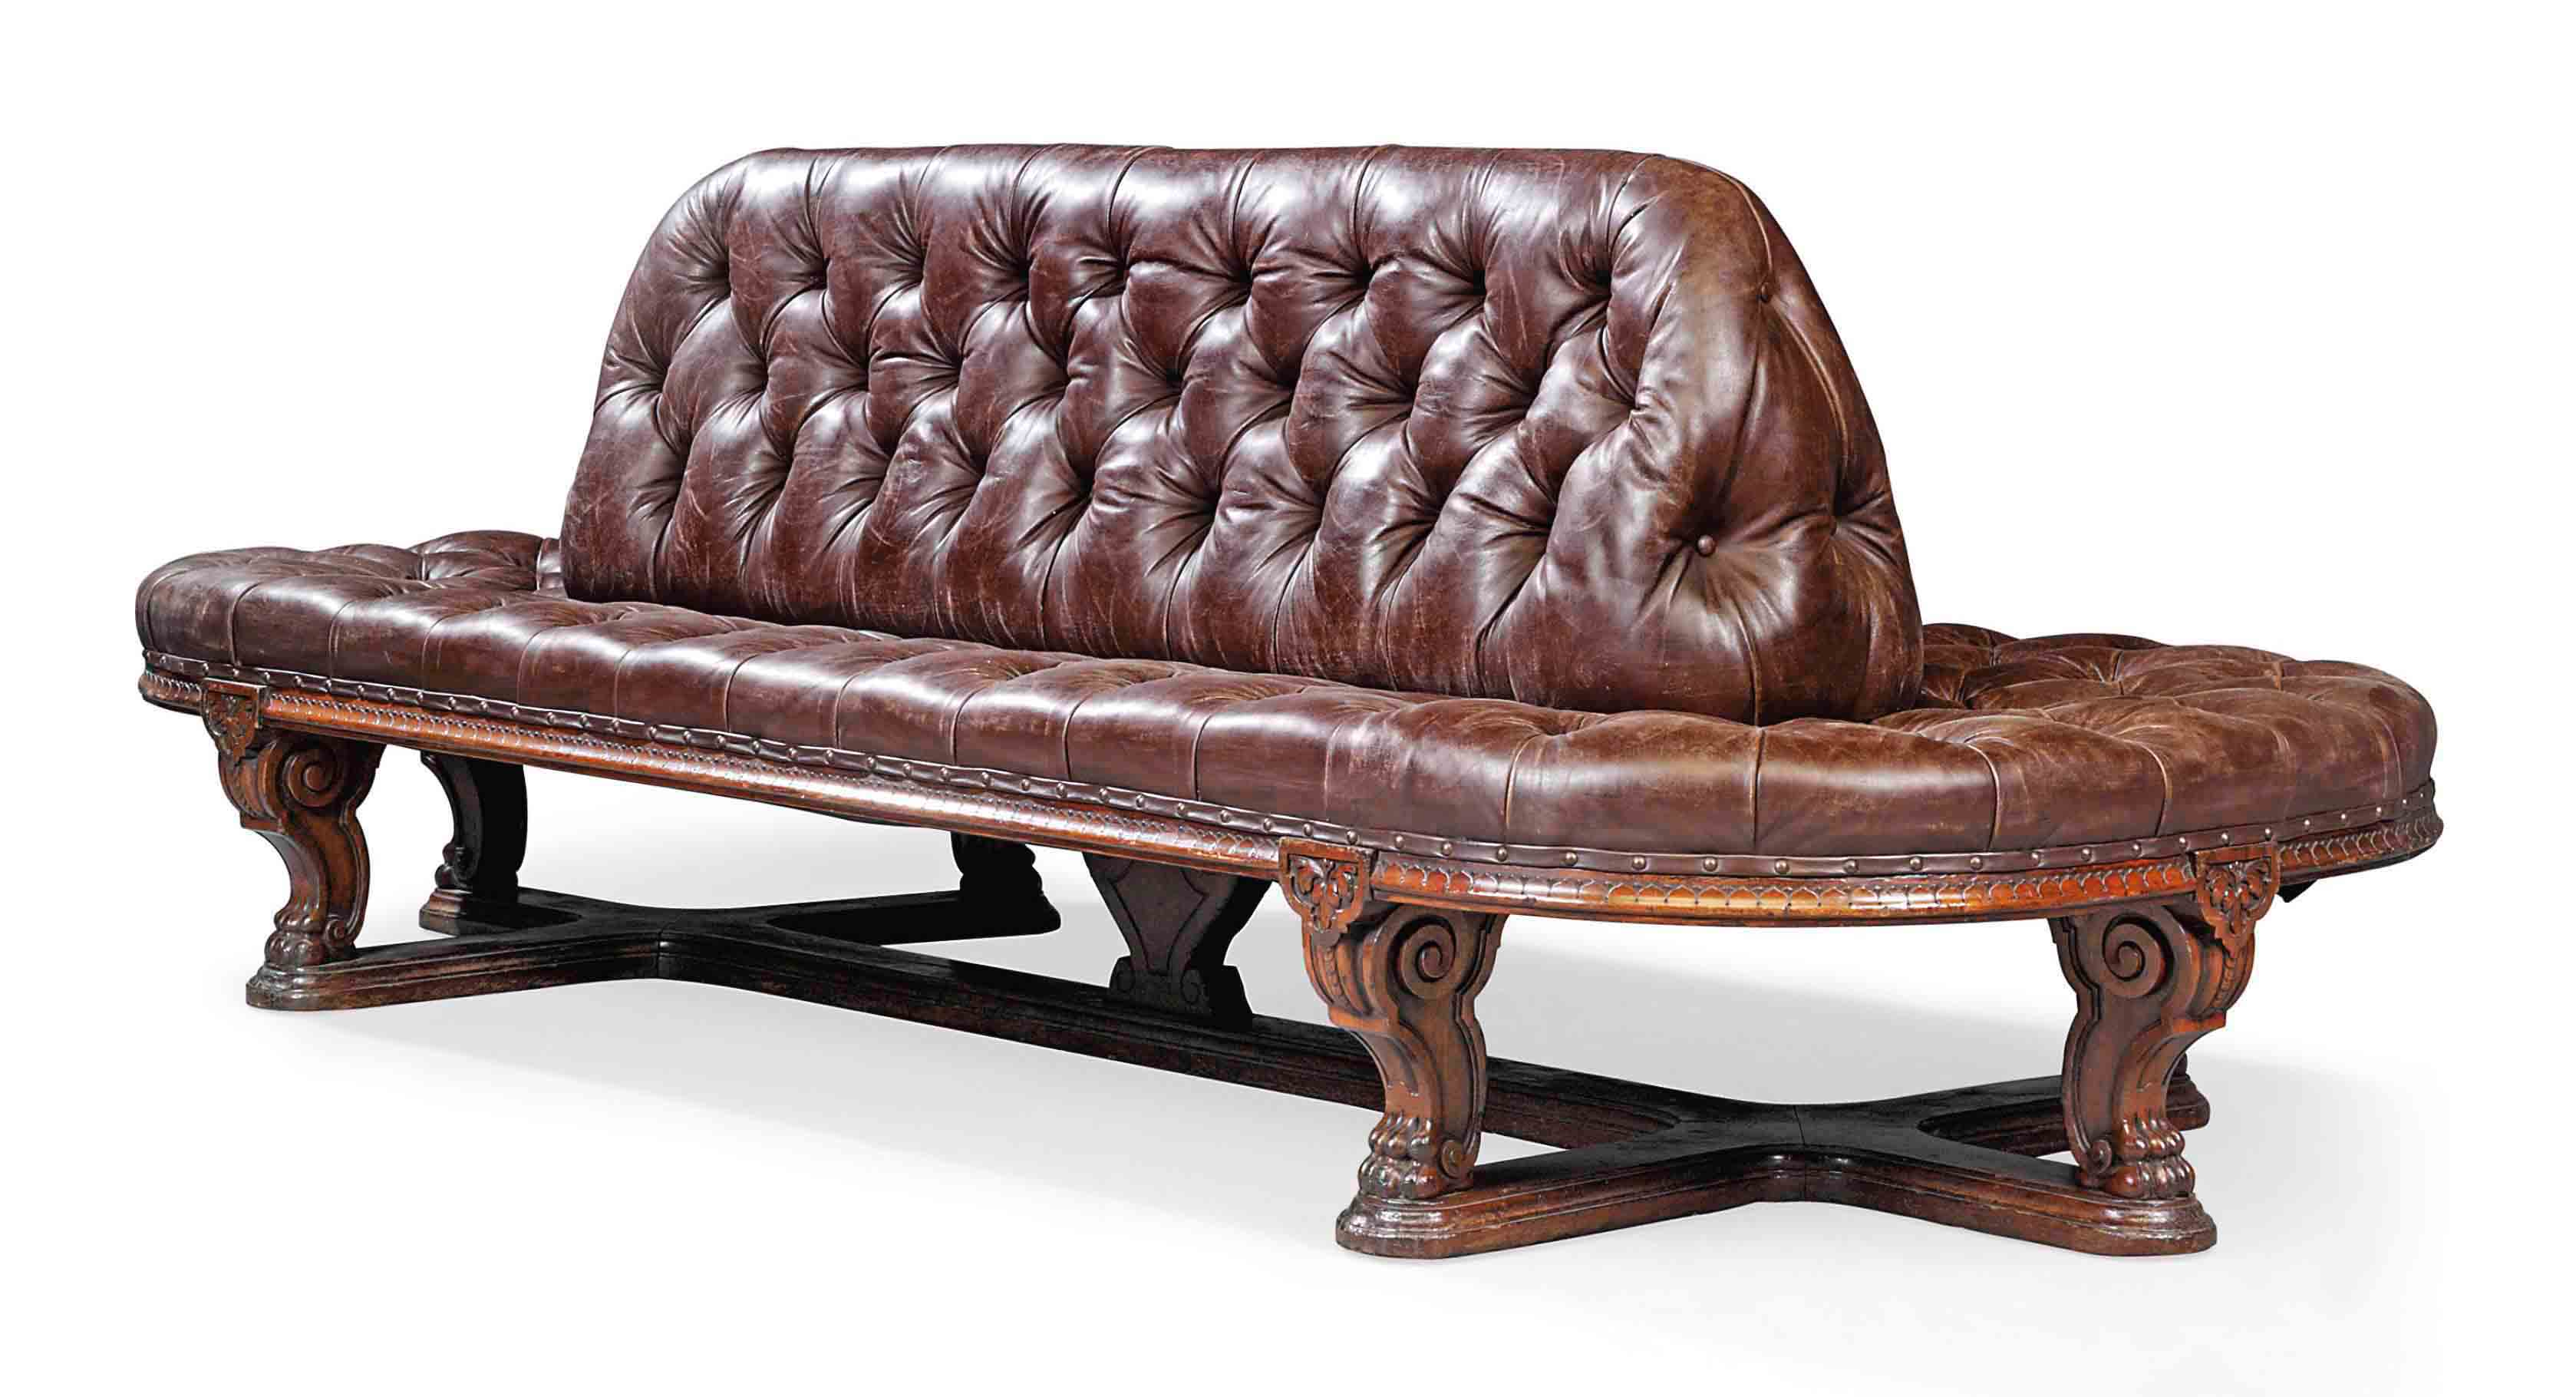 A LARGE EARLY VICTORIAN WALNUT GALLERY CENTRE SEAT